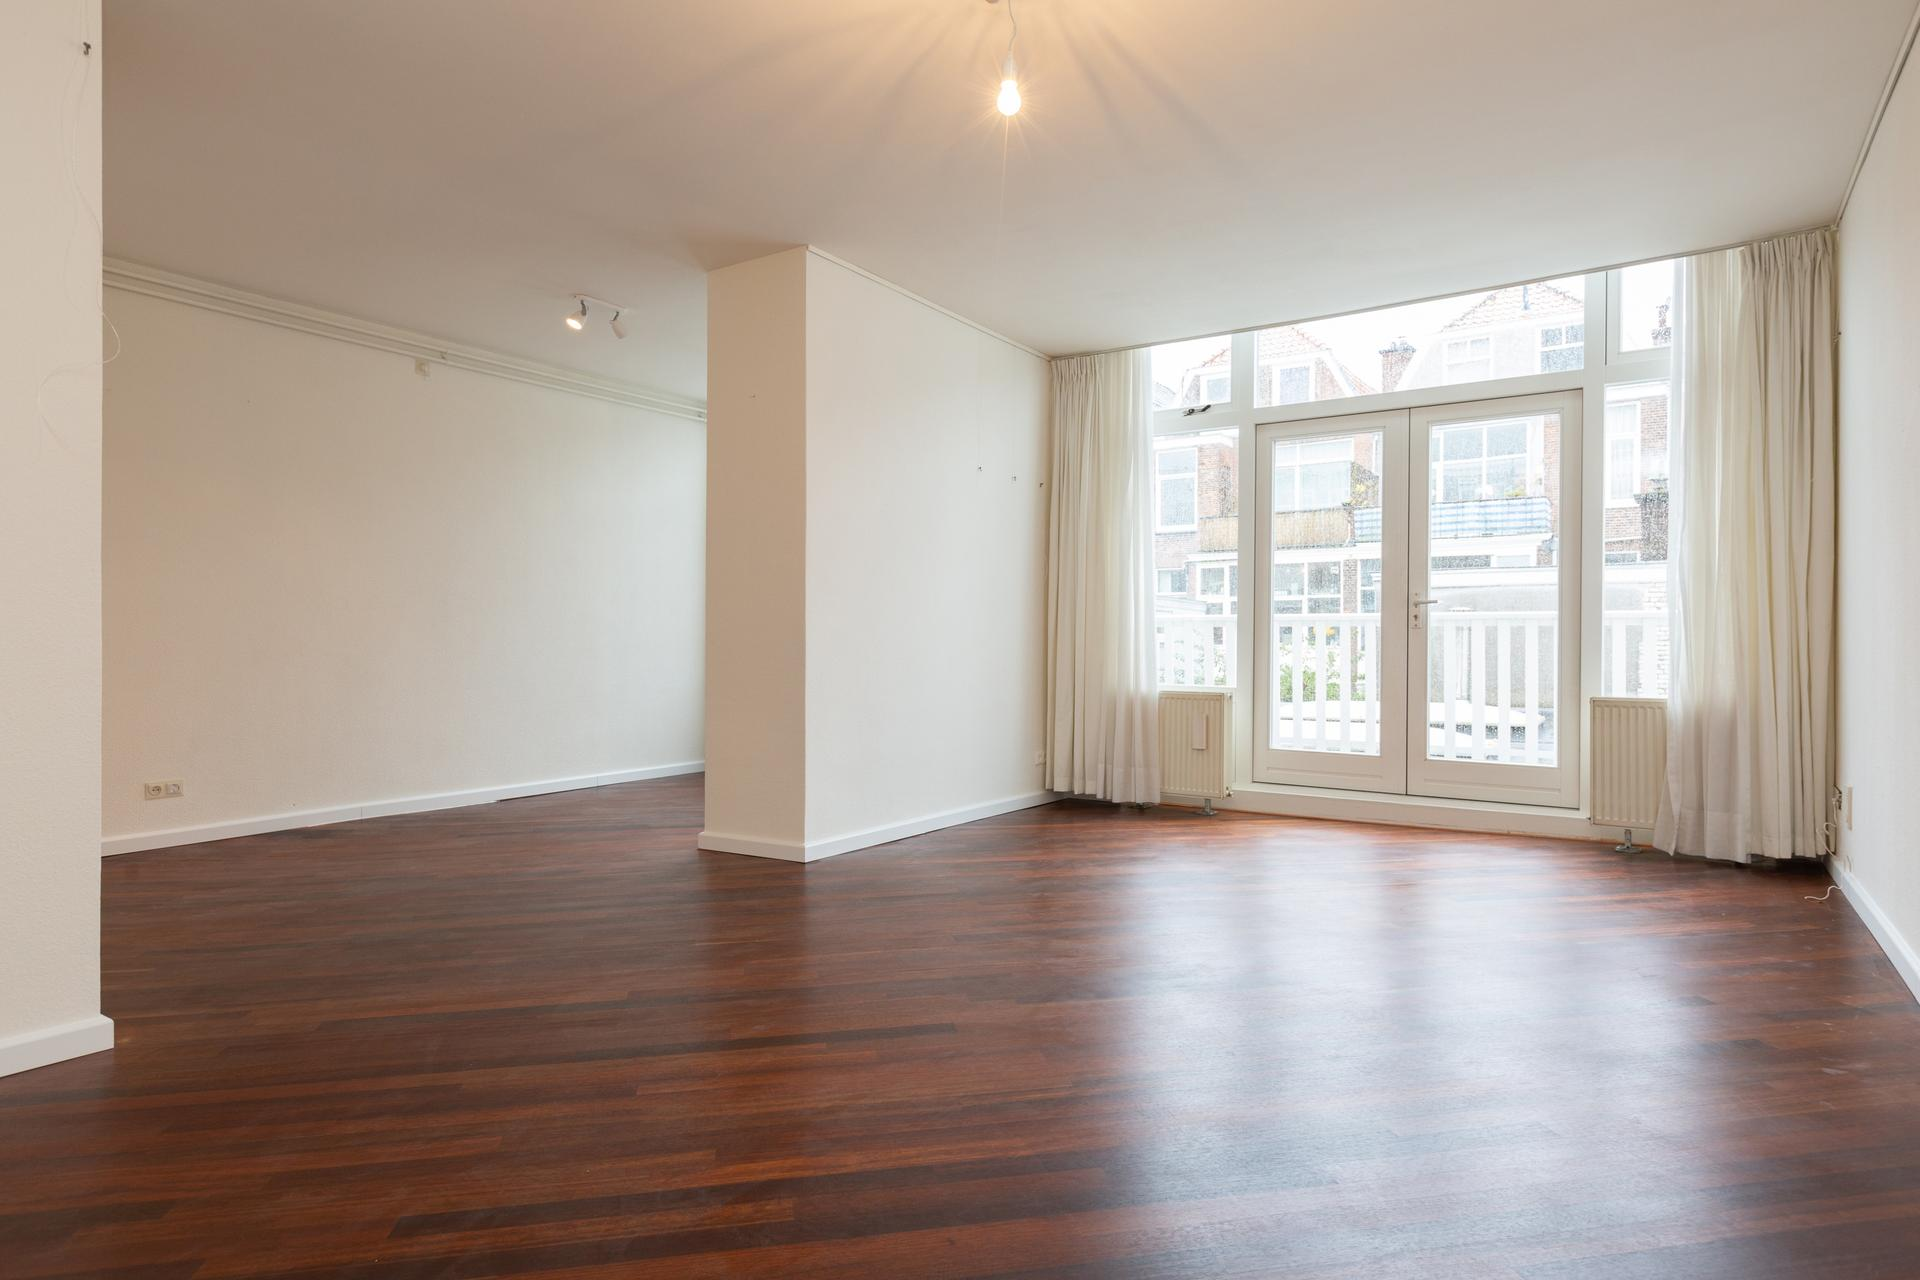 Bekijk de foto van: 2e Schuytstraat 130, 2517 XK in Den haag - The Hague Real Estate Services